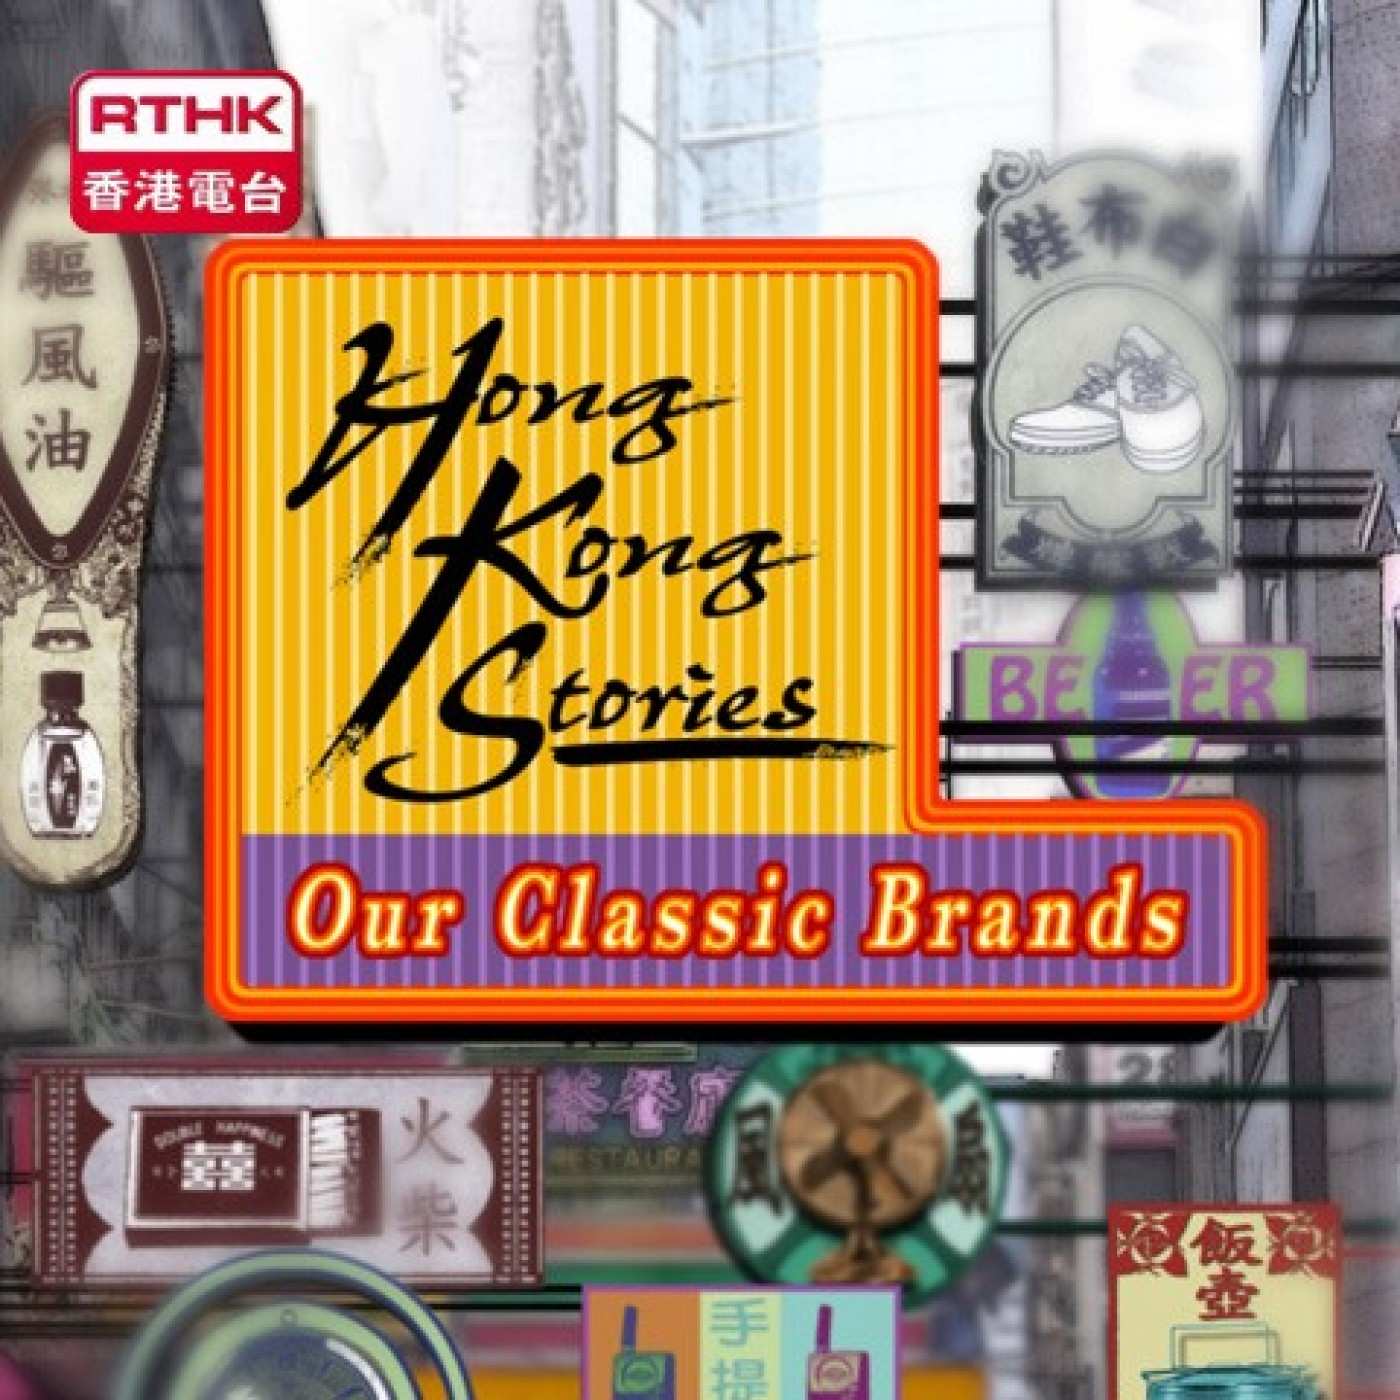 HONG KONG STORIES XIX - Our Classic Brands